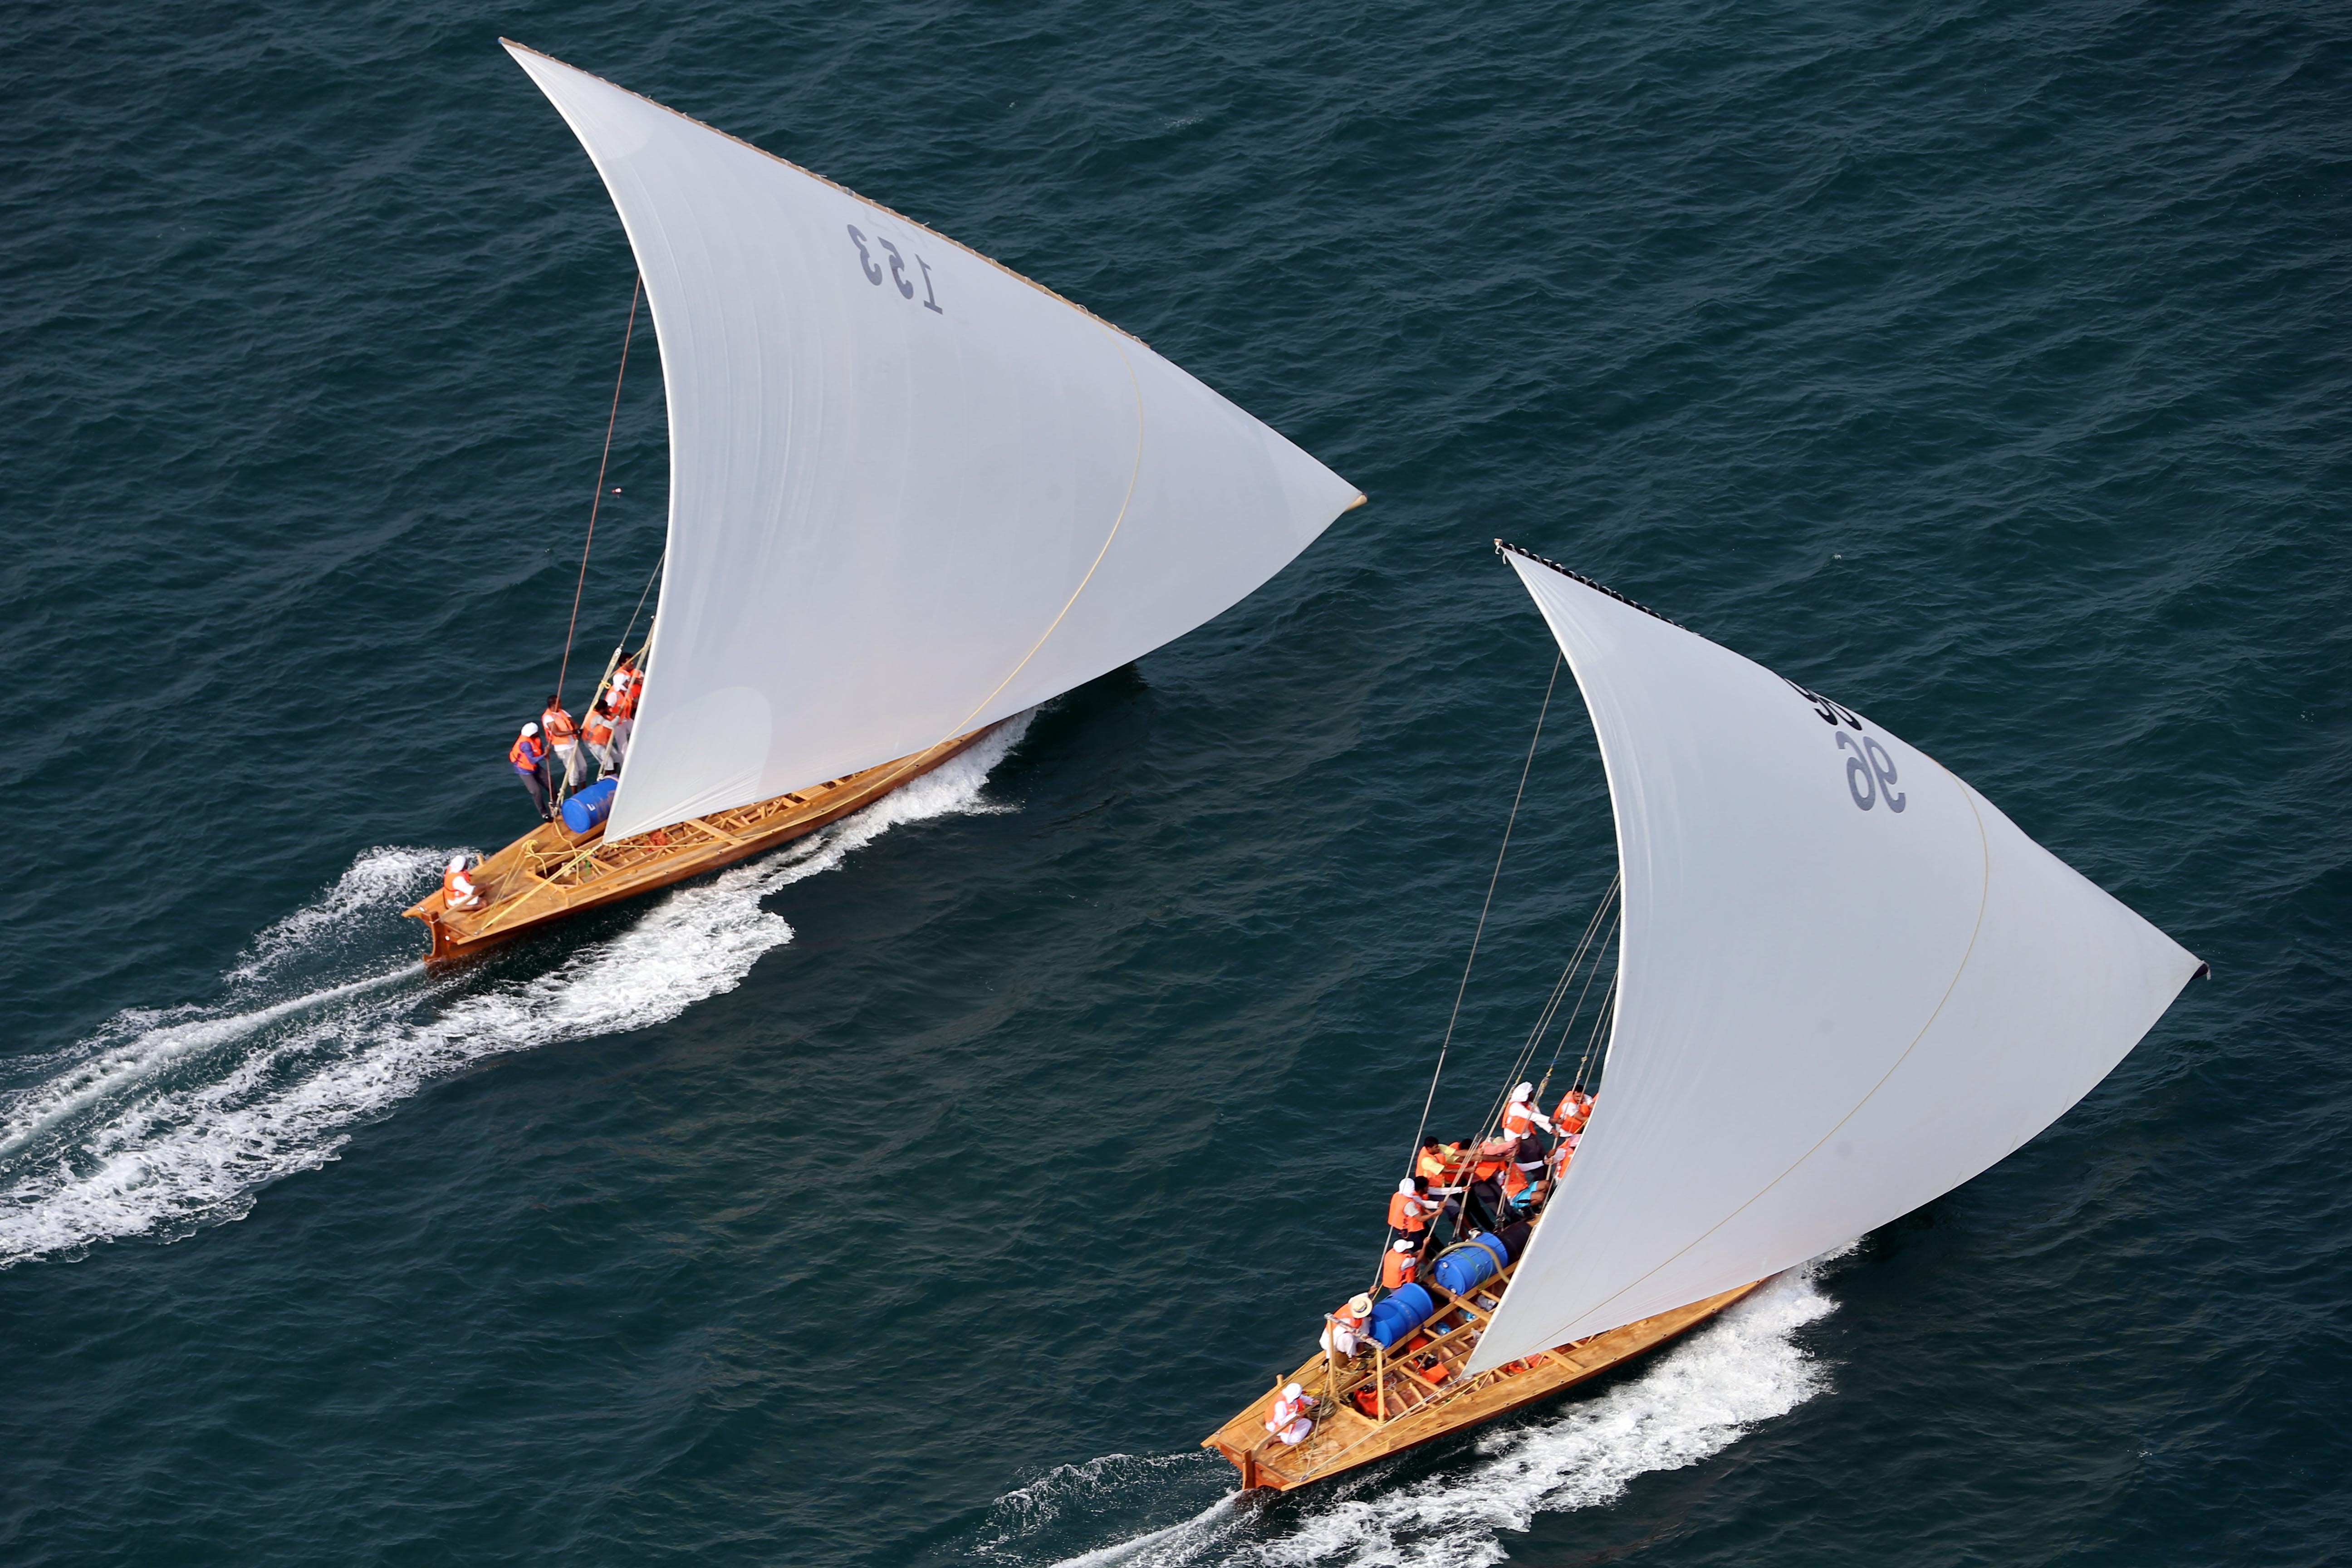 DIMC launches the 43ft Dubai Traditional Dhow Sailing Race Today